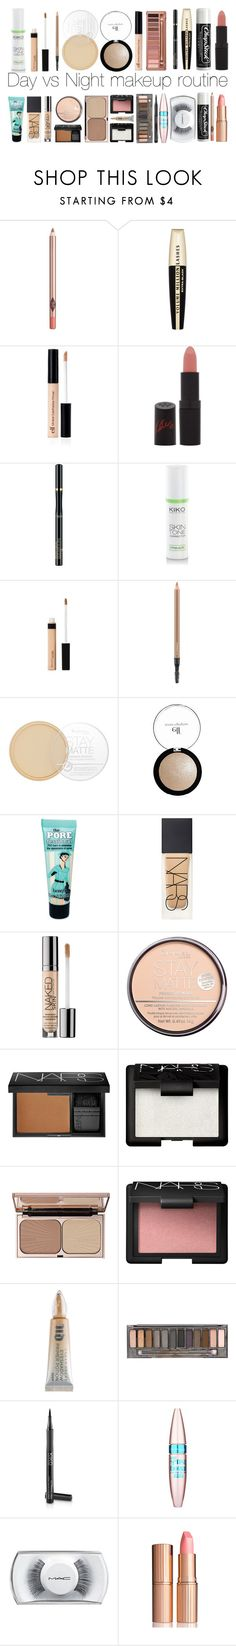 """""""Day vs Night makeup routine"""" by trxpicalwhore ❤ liked on Polyvore featuring beauty, Charlotte Tilbury, L'Oréal Paris, Chapstick, Rimmel, Urban Decay, MAC Cosmetics, Benefit, NARS Cosmetics and Maybelline"""